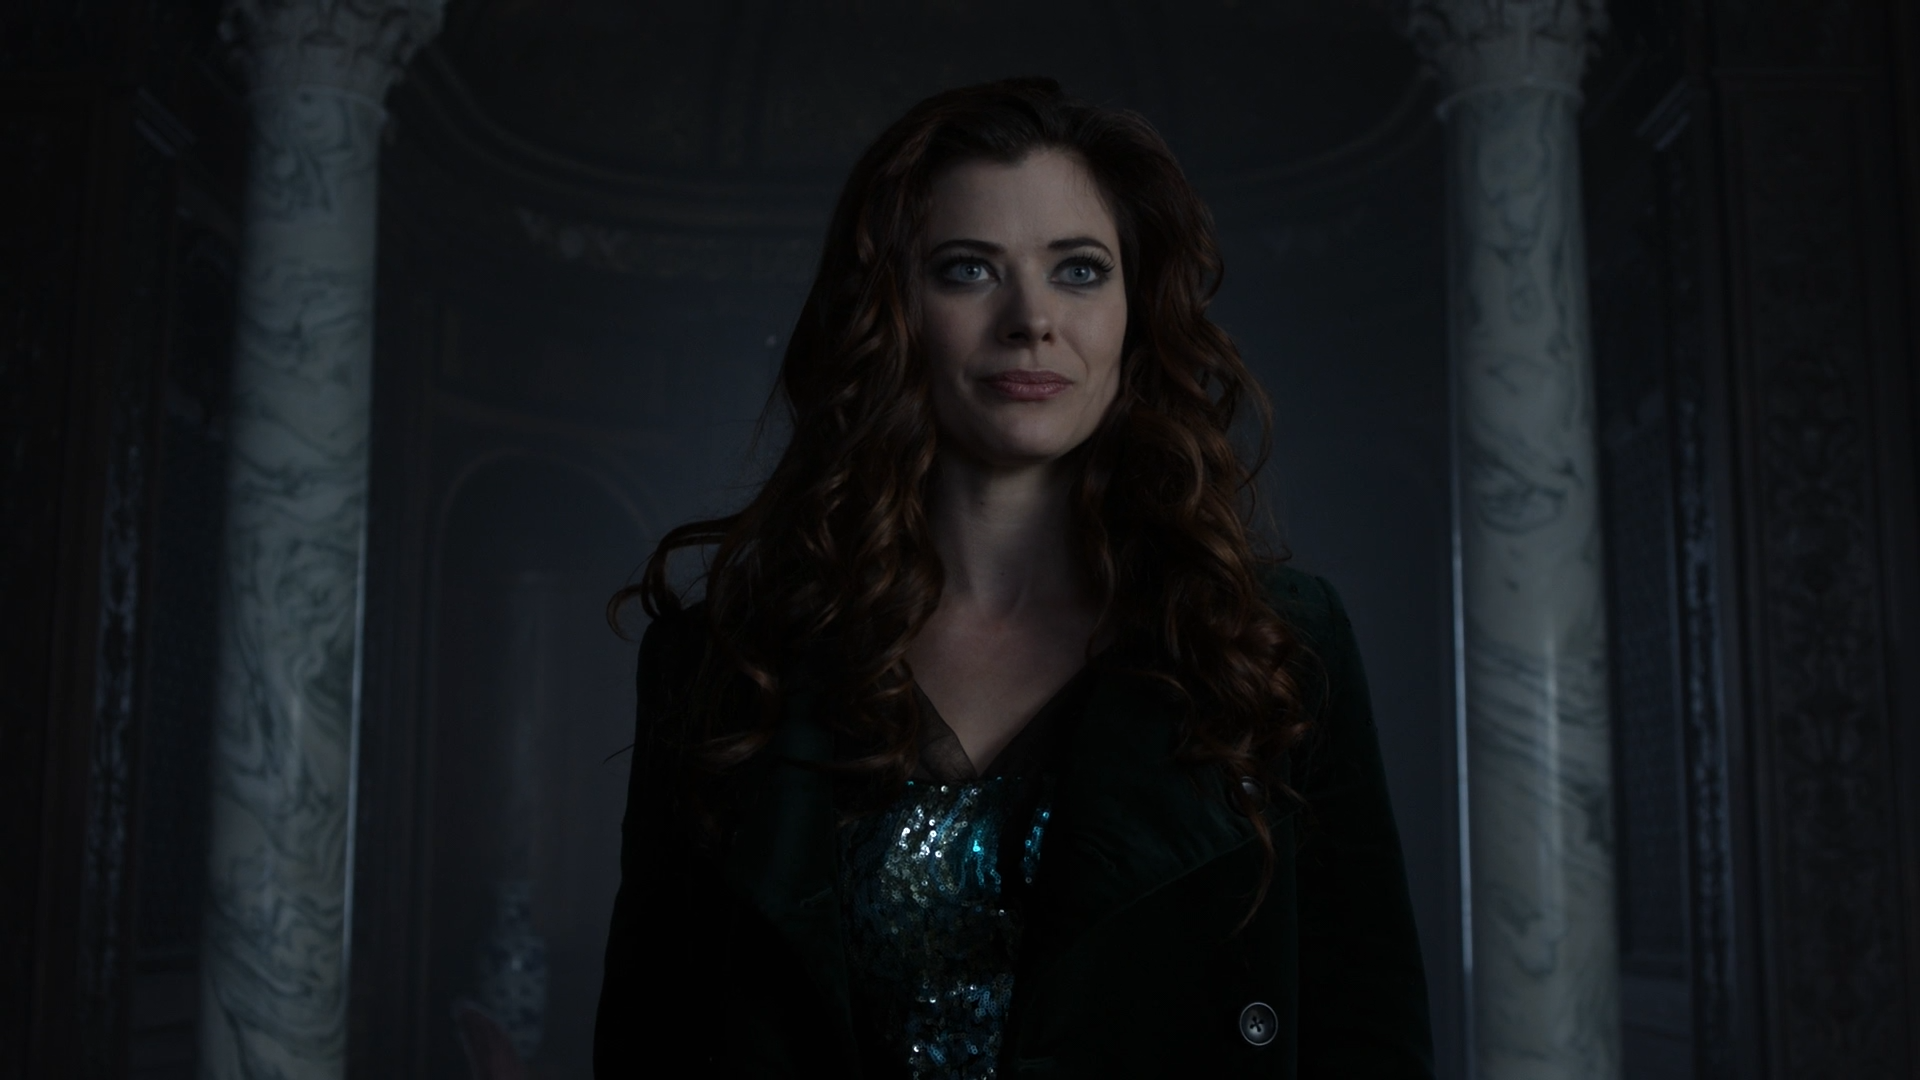 Ivy Pepper | Gotham Wiki | FANDOM powered by Wikia